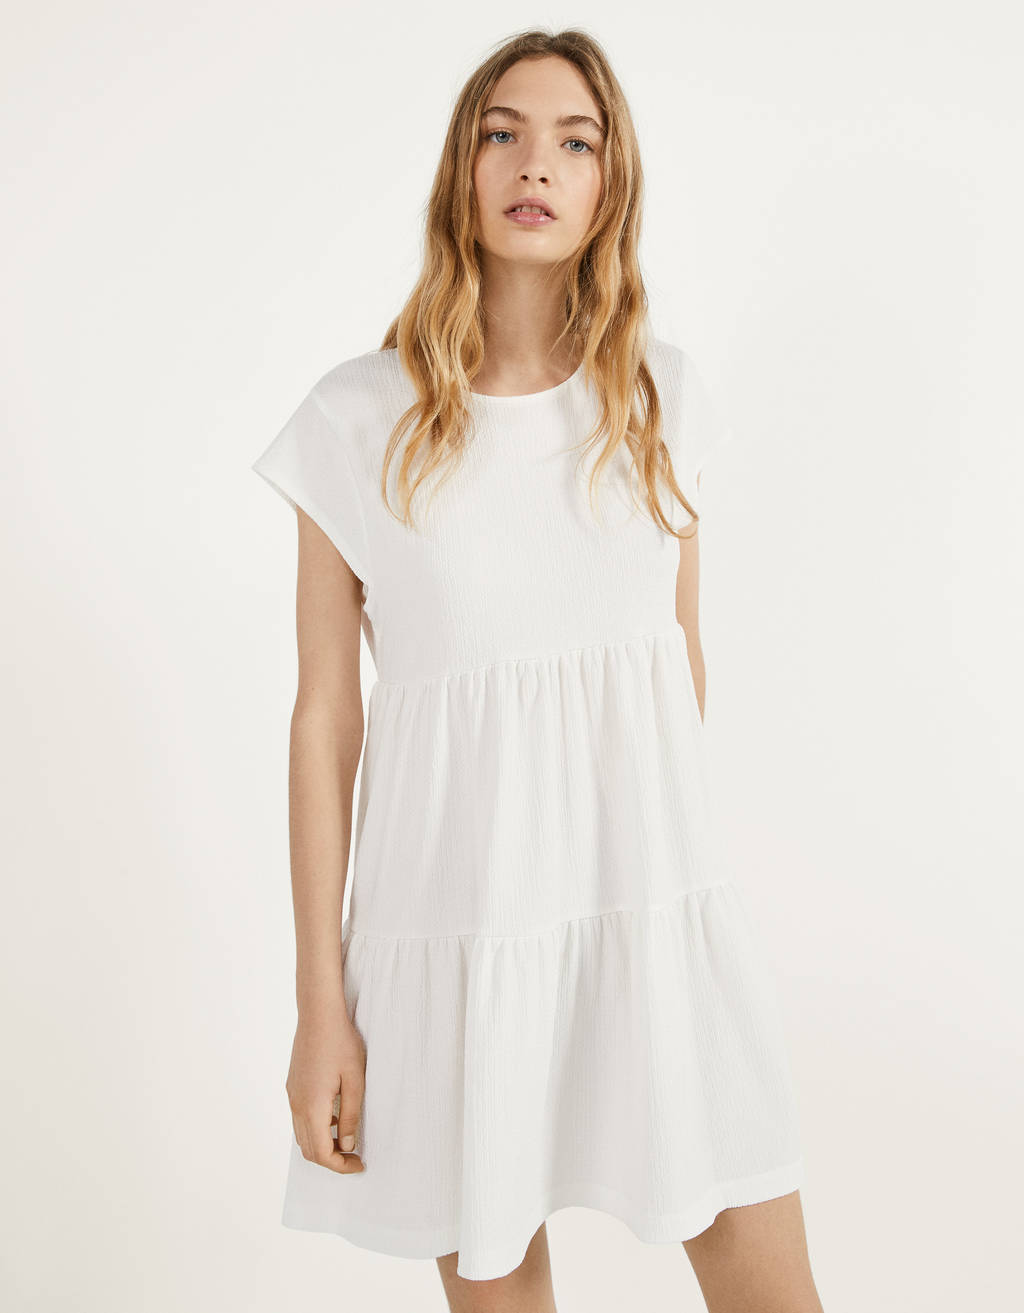 Baby-doll short sleeve dress